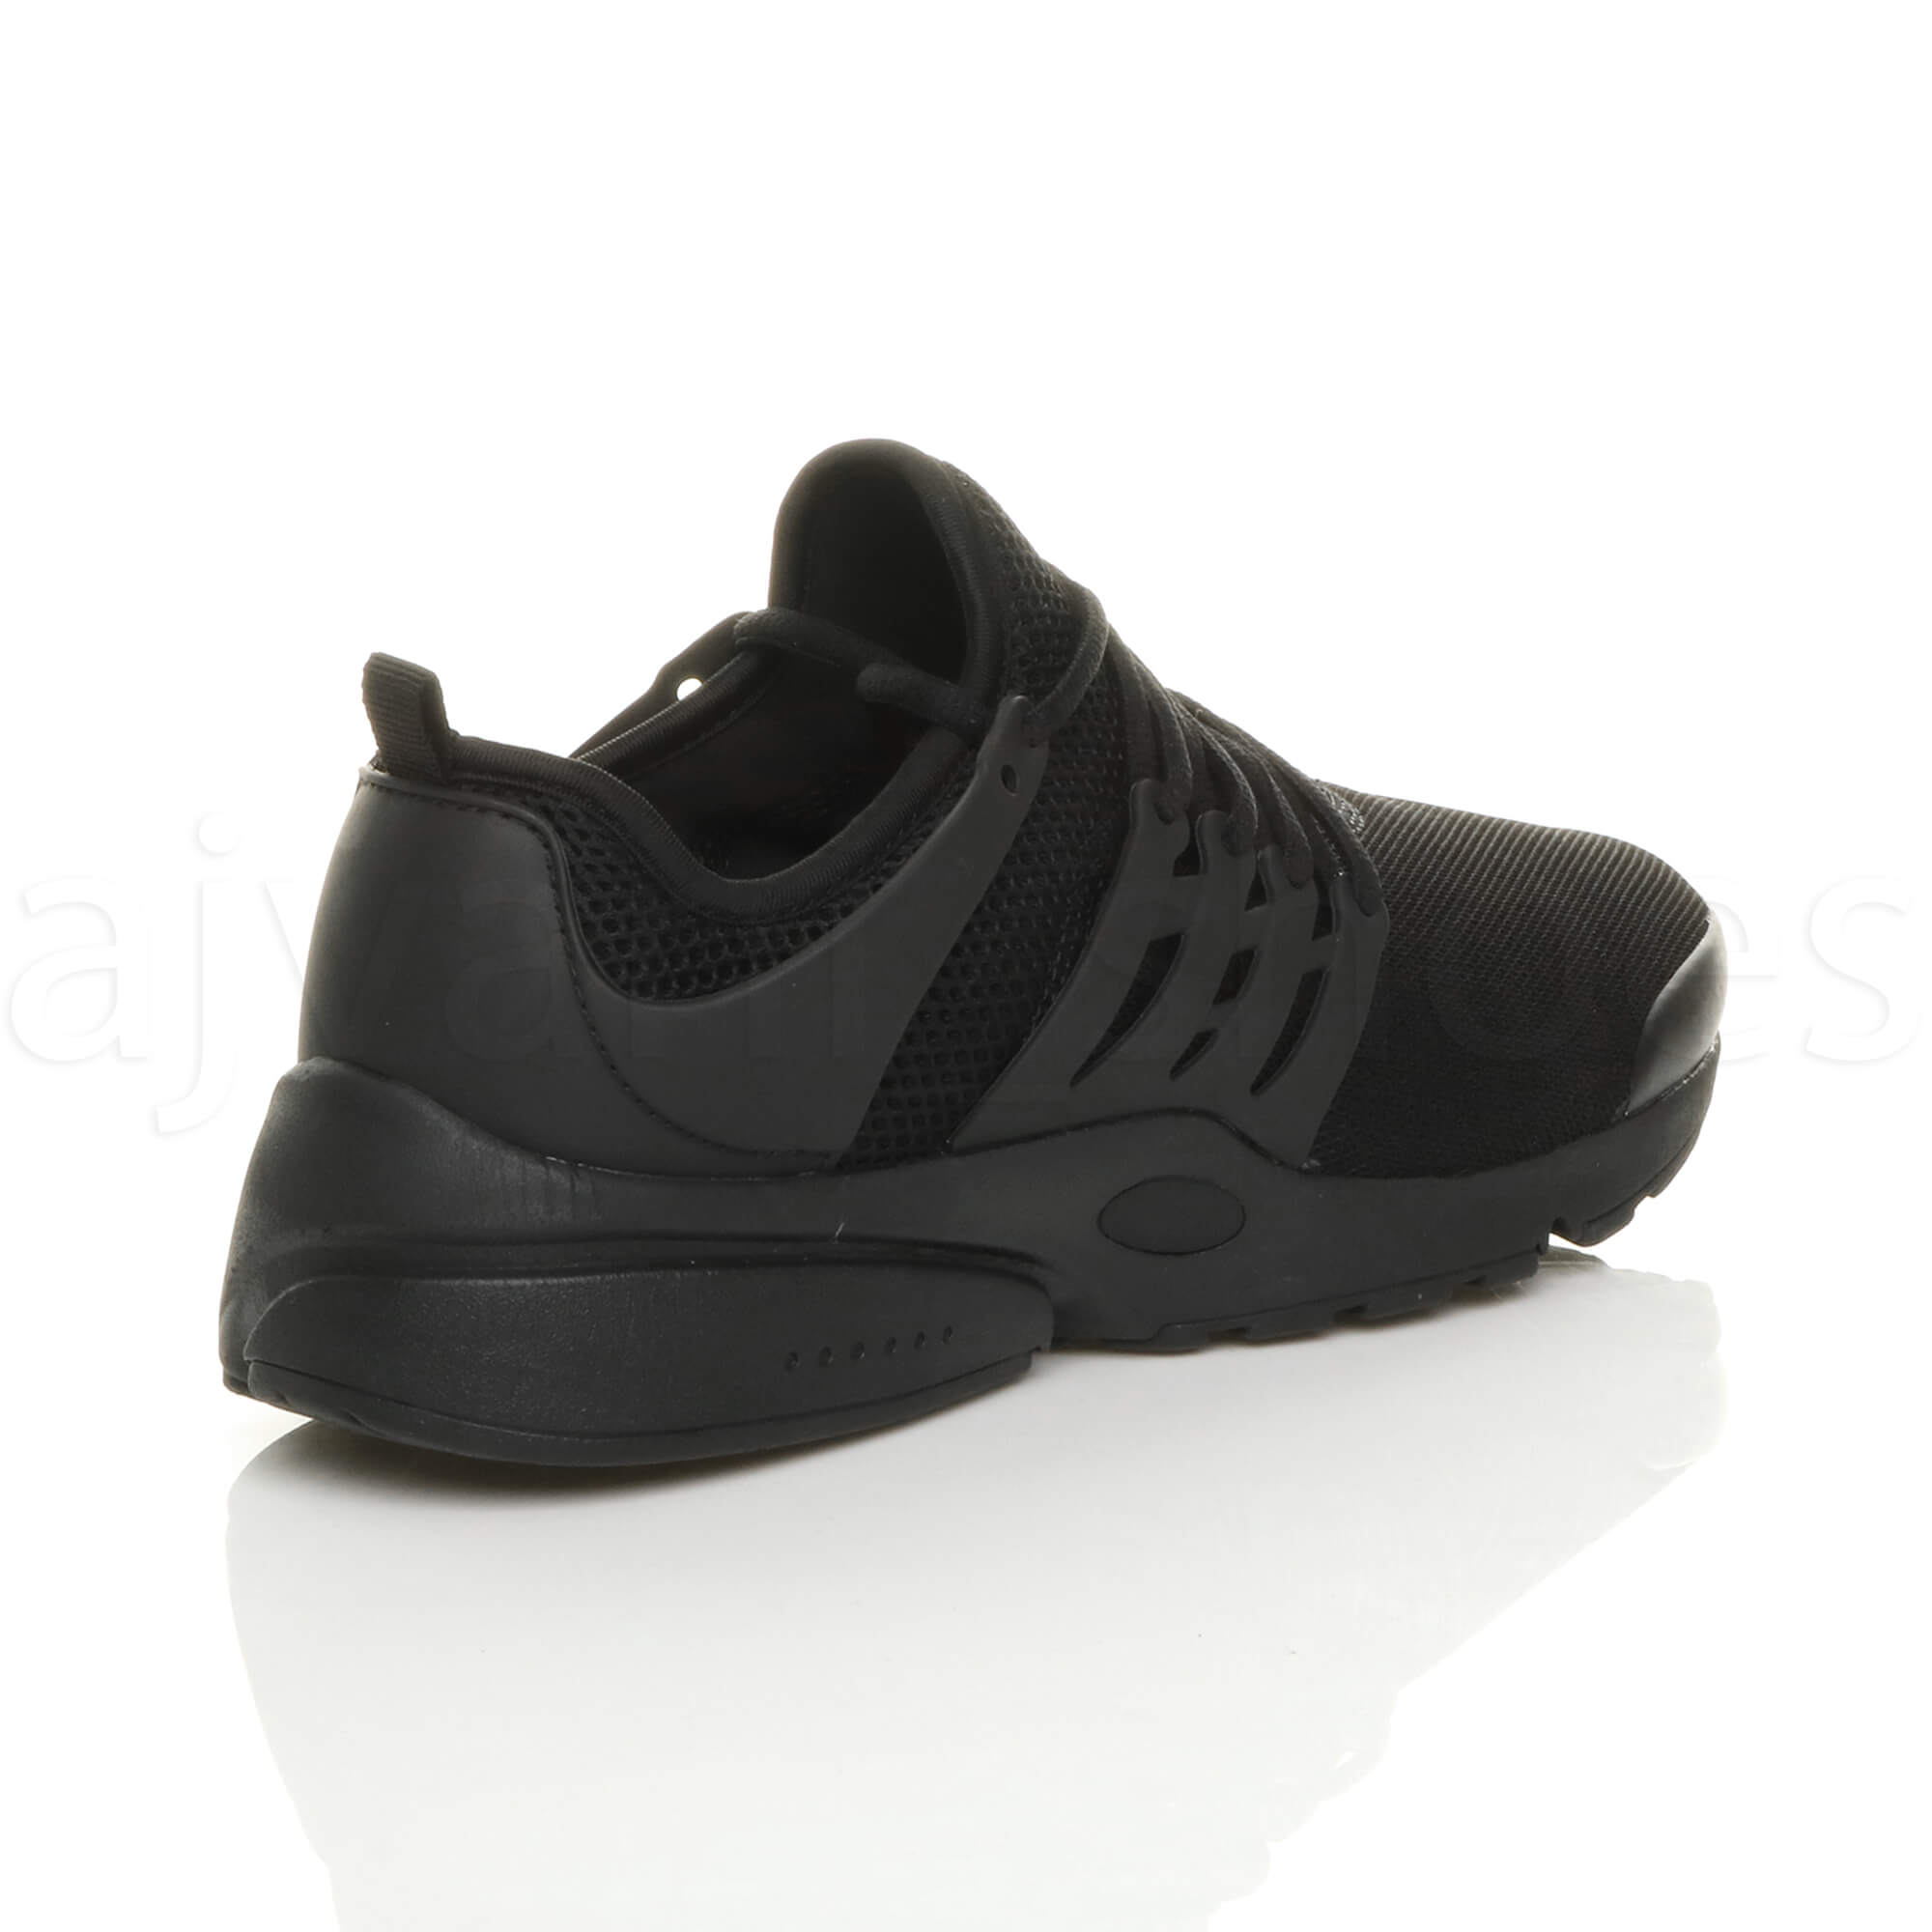 MENS-LACE-UP-SPORTS-GYM-FITNESS-RUNNING-FLEXIBLE-TRAINERS-CASUAL-SNEAKERS-SIZE thumbnail 5